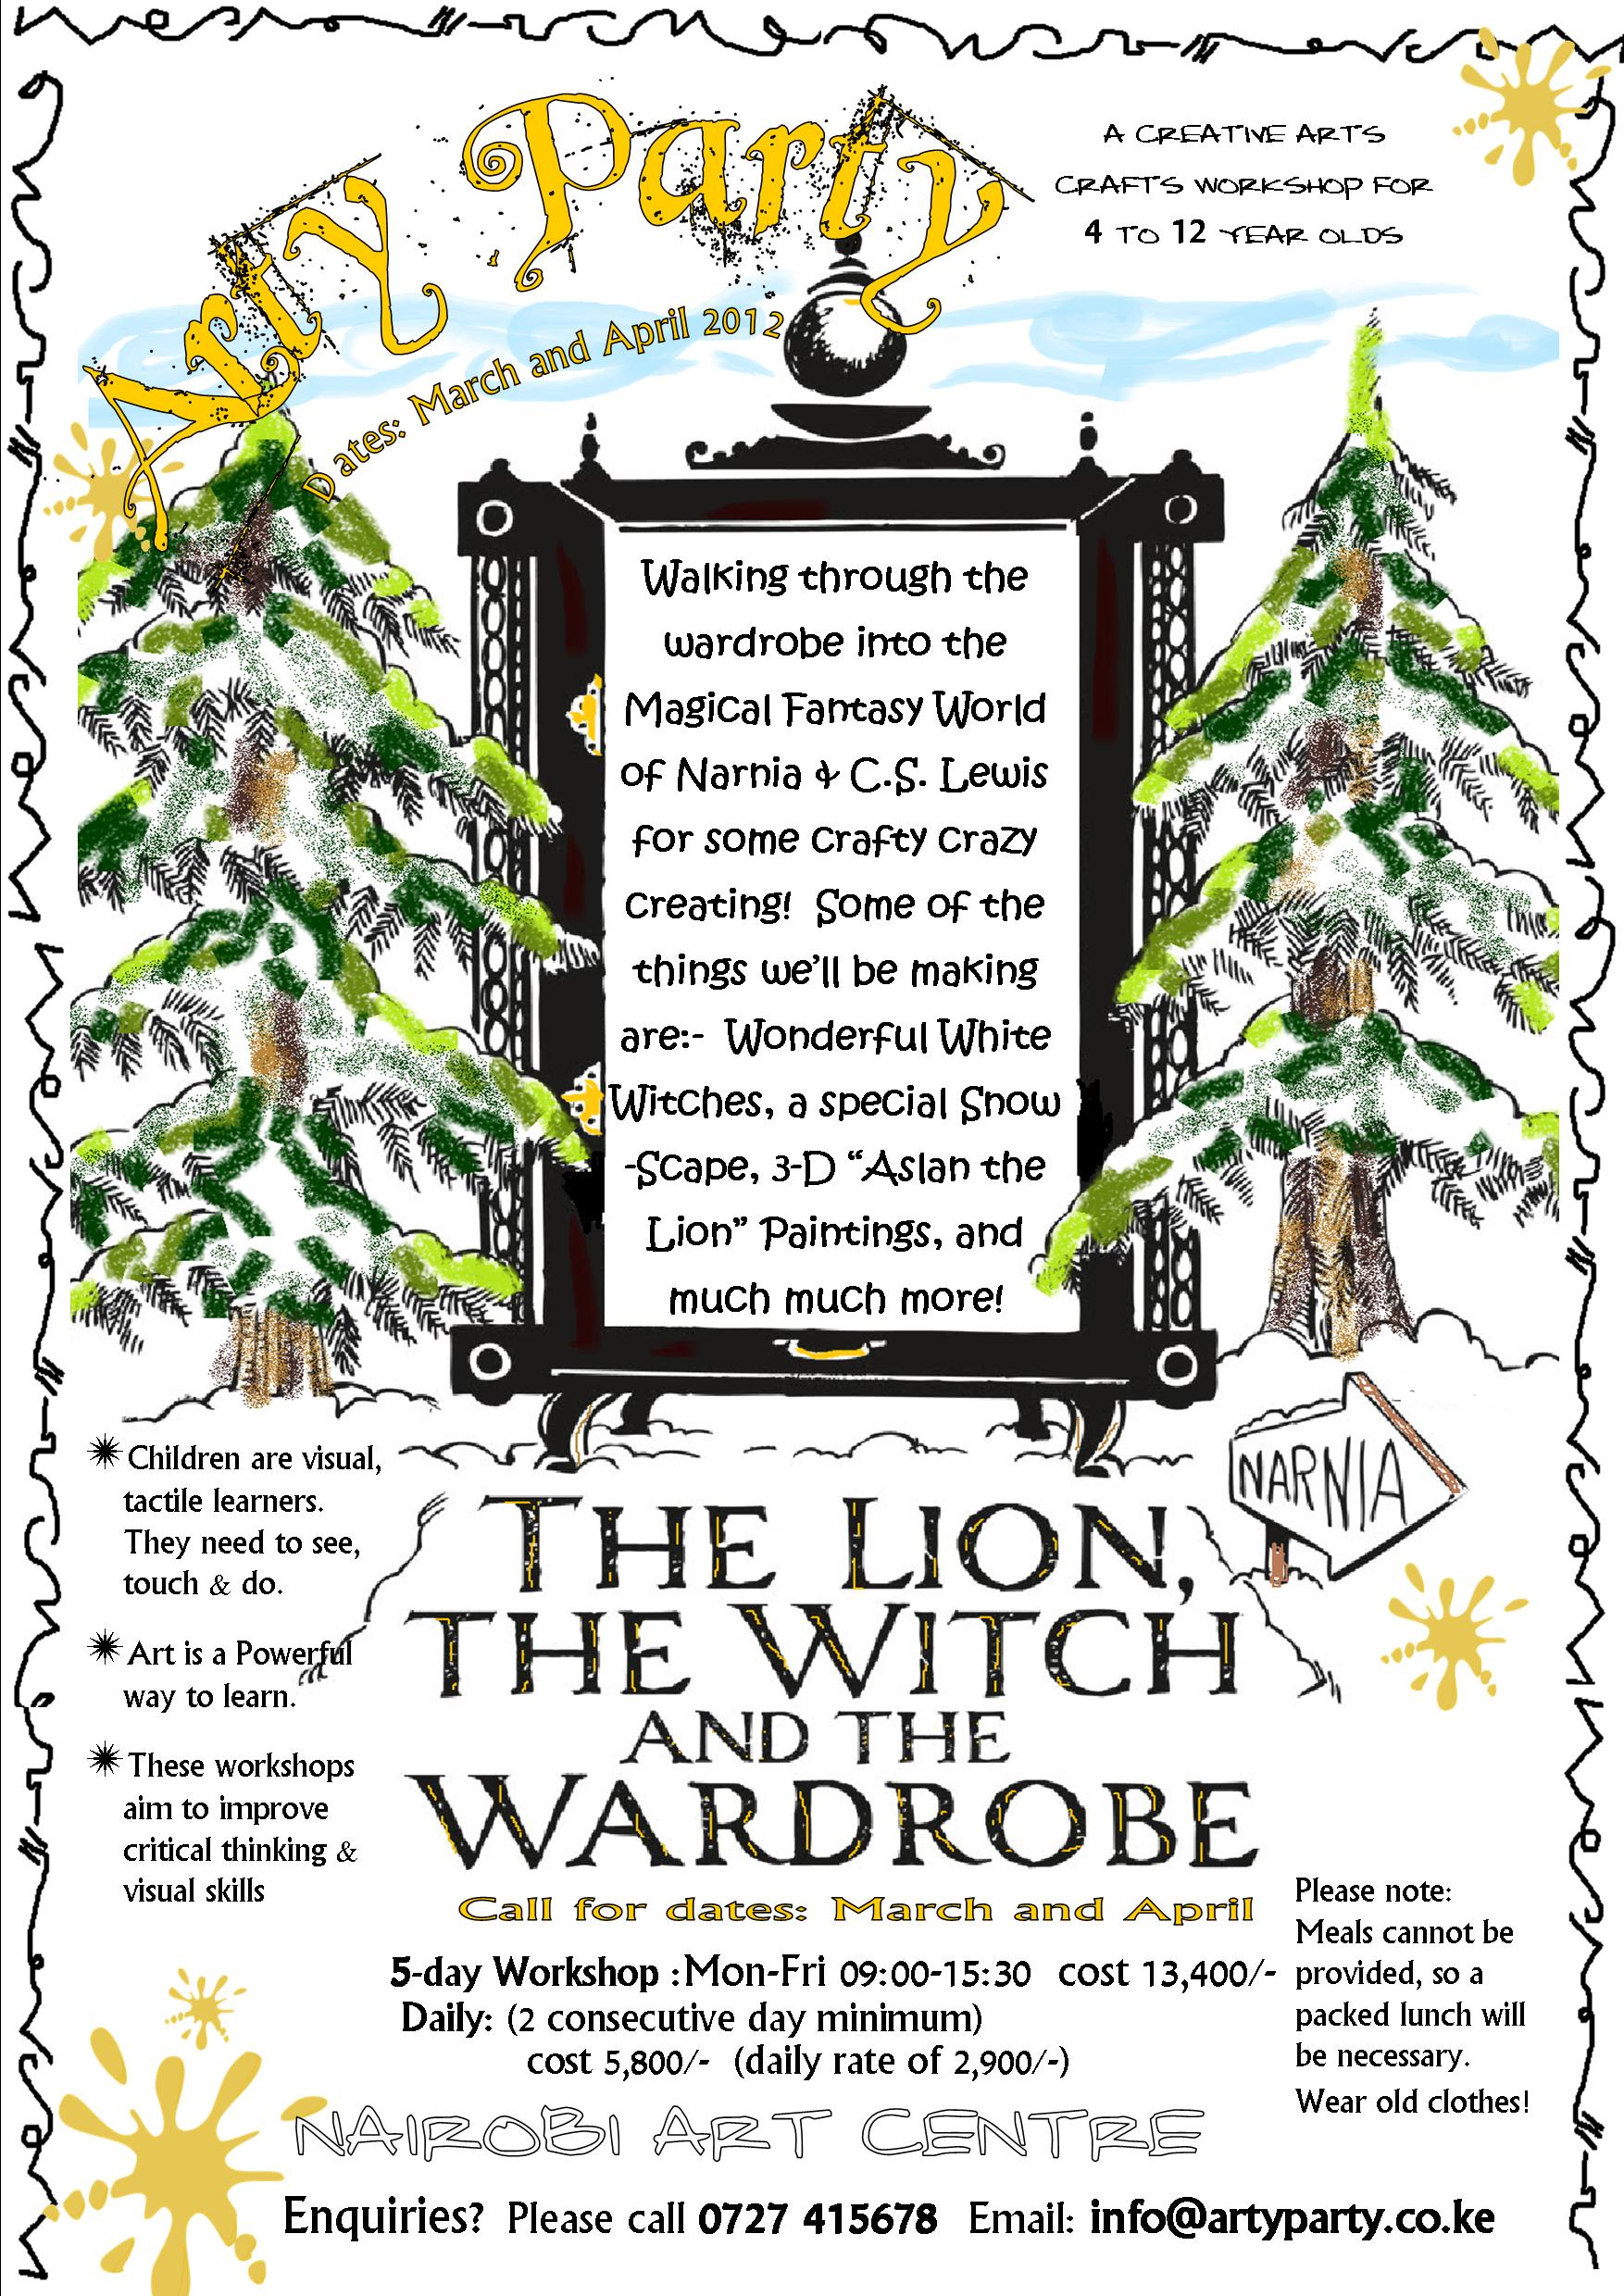 Worksheet The Lion The Witch And The Wardrobe Worksheets the lion witch and wardrobe clipart kid worksheets clip art